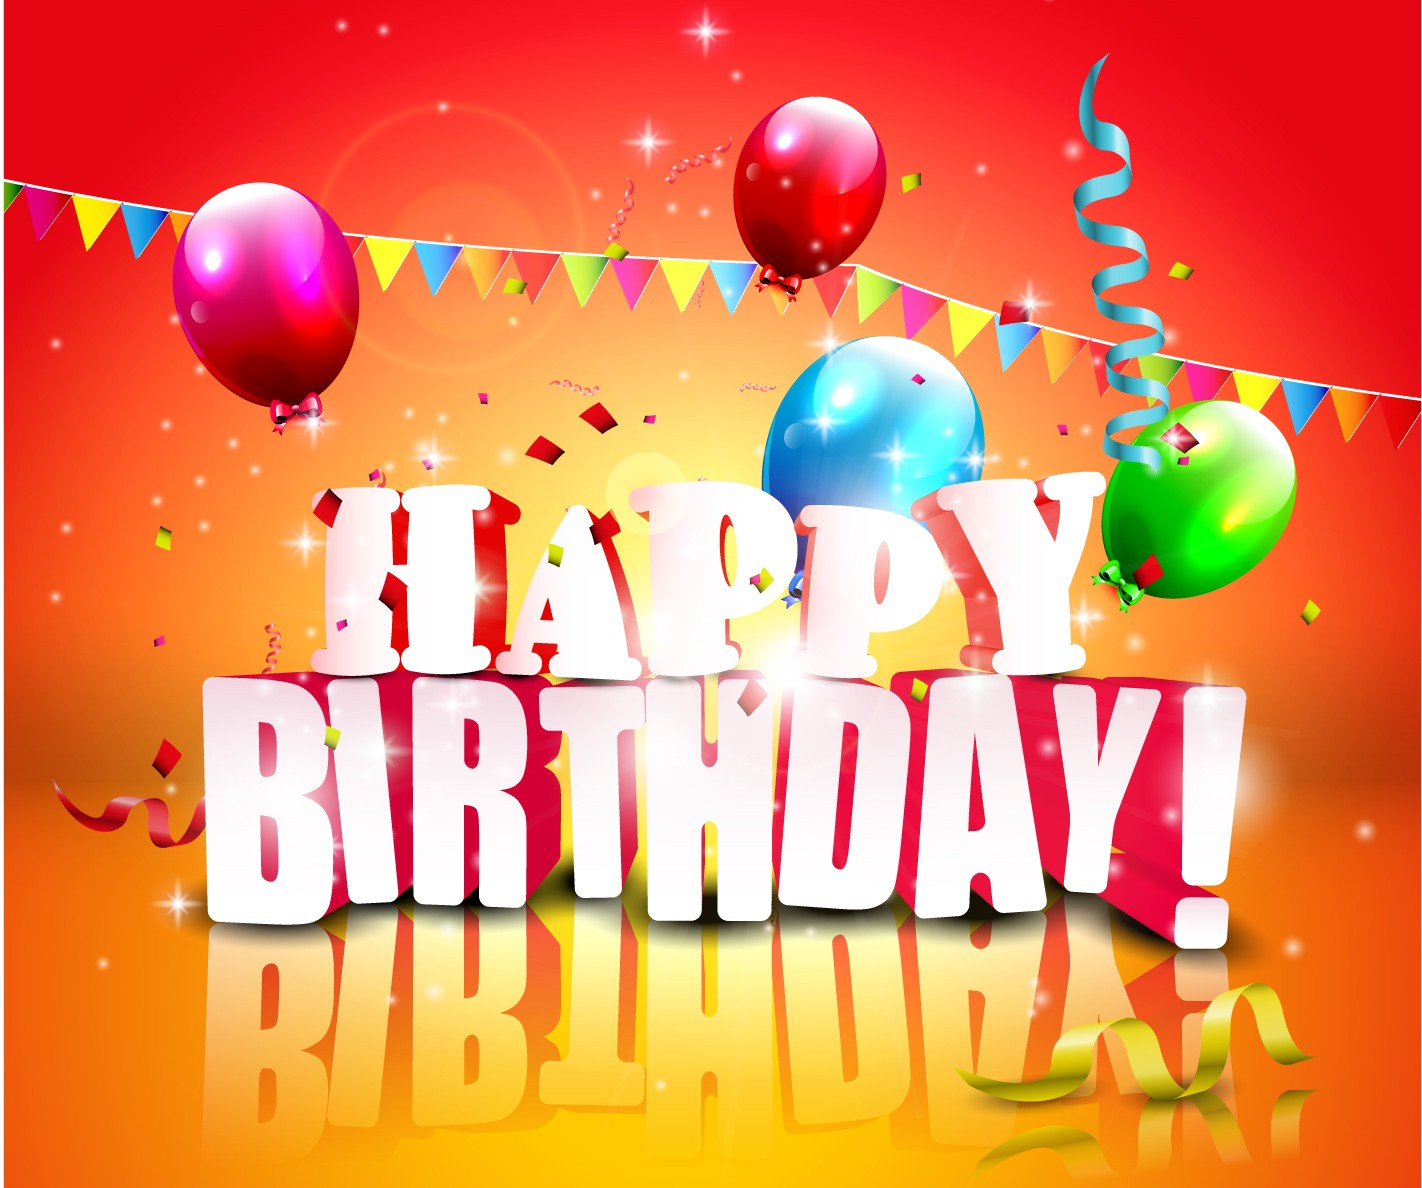 bday wishes card ; happy-birthday-greeting-card-for-you-jpg